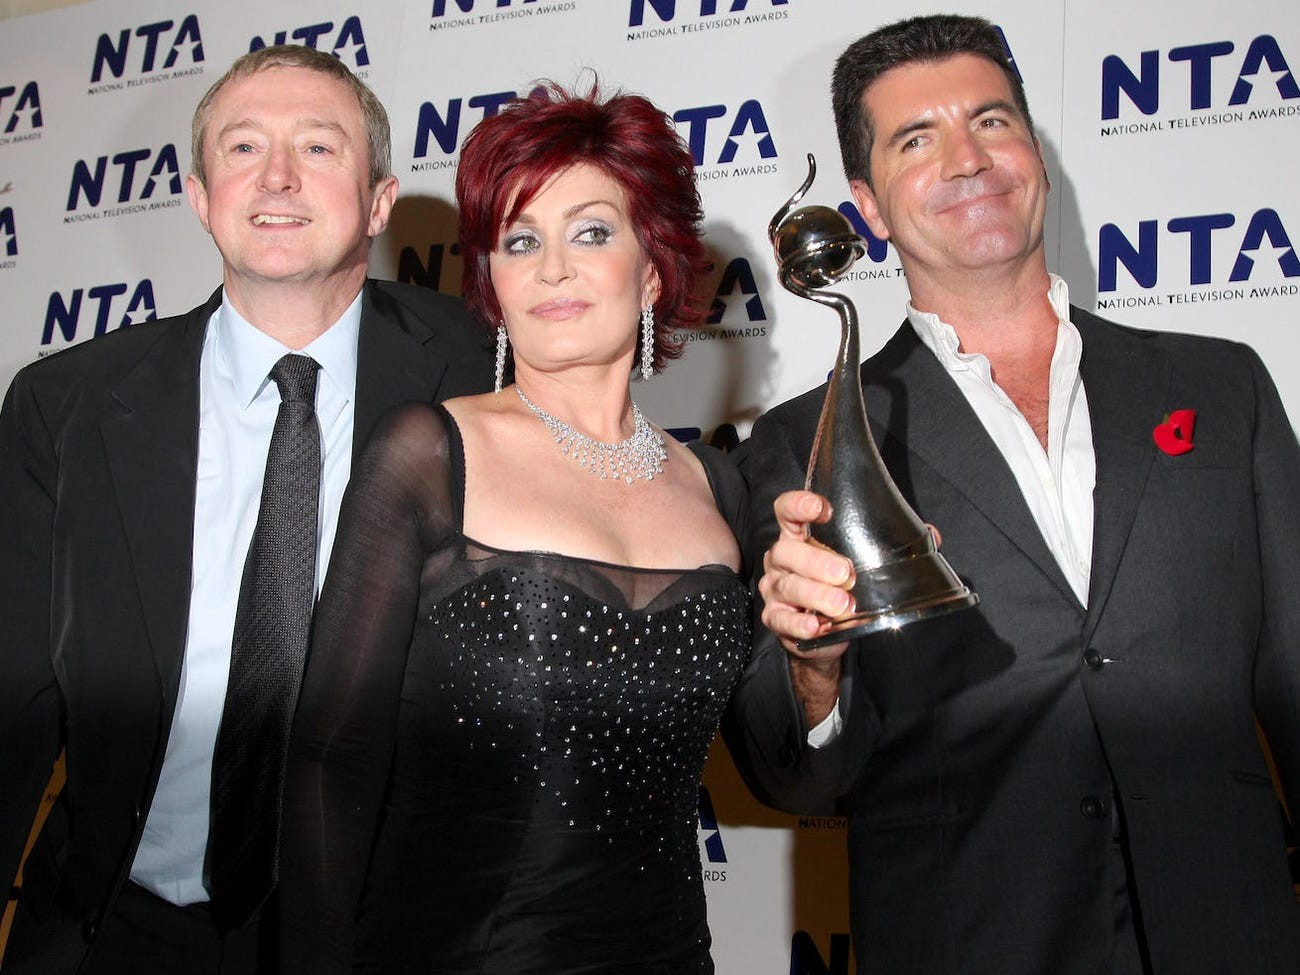 Louis Walsh, Sharon Osbourne and Simon Cowell in 2007.